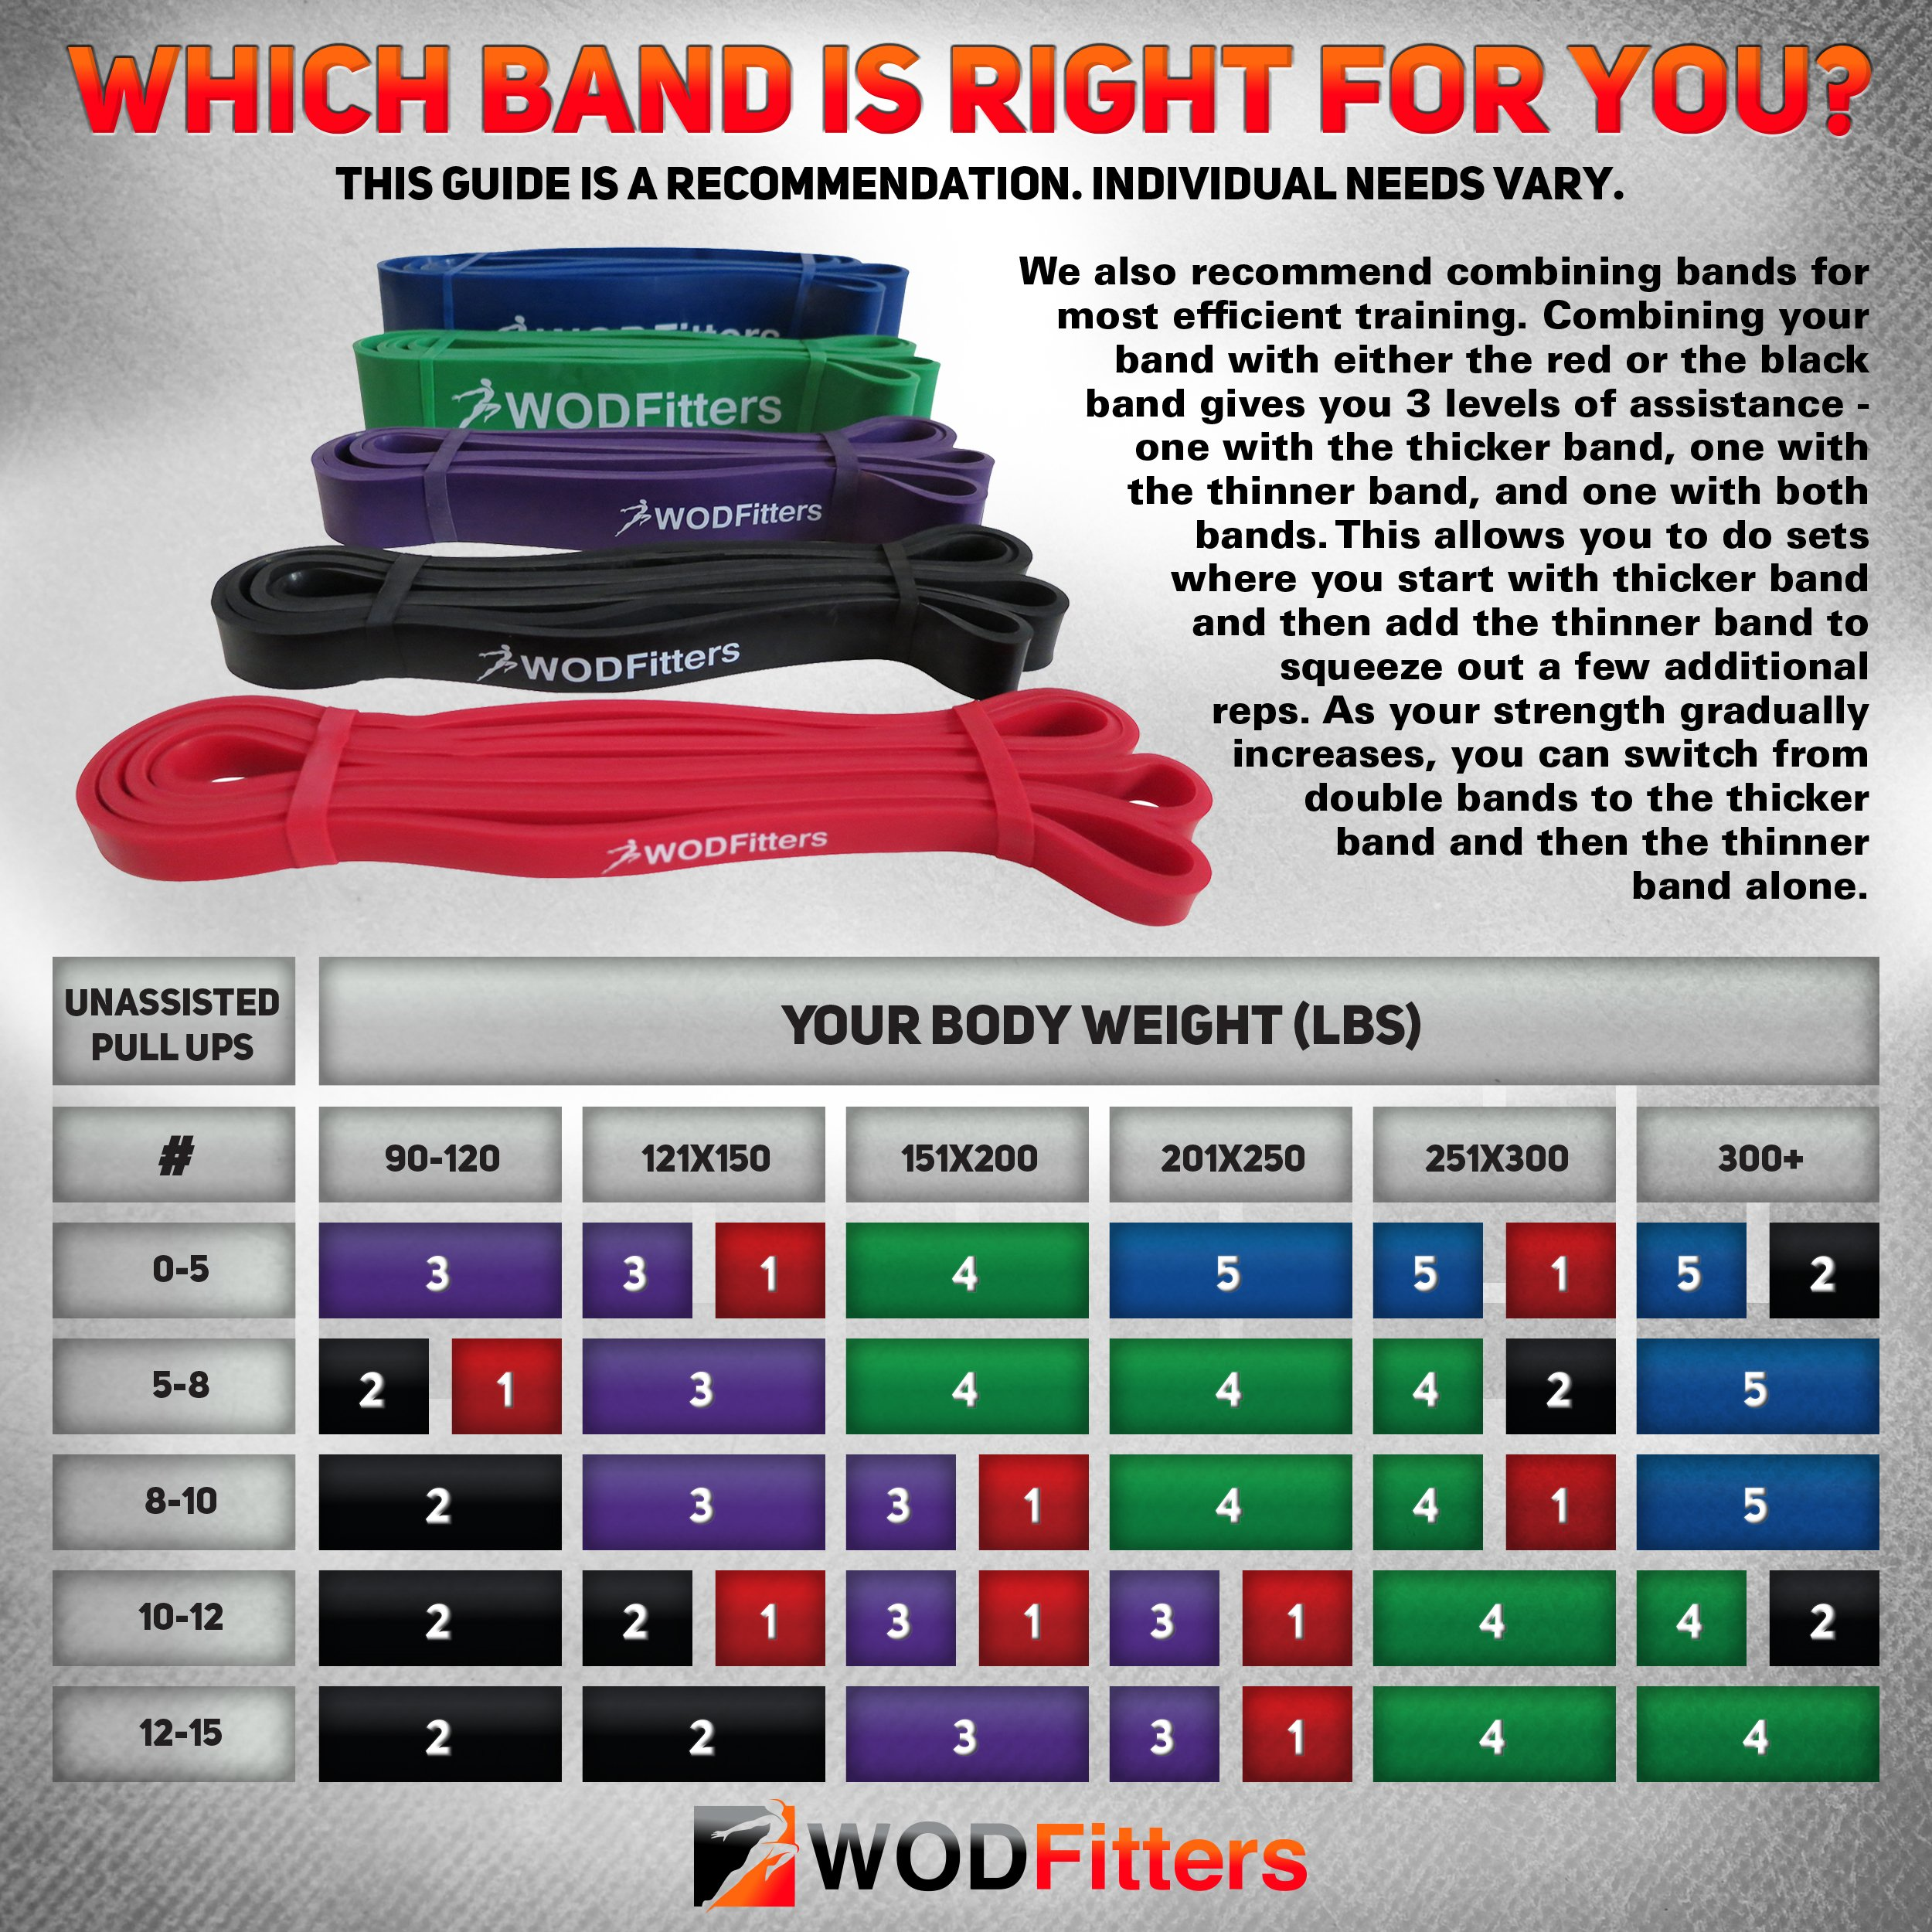 WODFitters Stretch Resistance Pull Up Assist Band with eGuide, #1 Red- 10 to 35 Pounds (1/2 ''4.5mm) by WODFitters (Image #3)